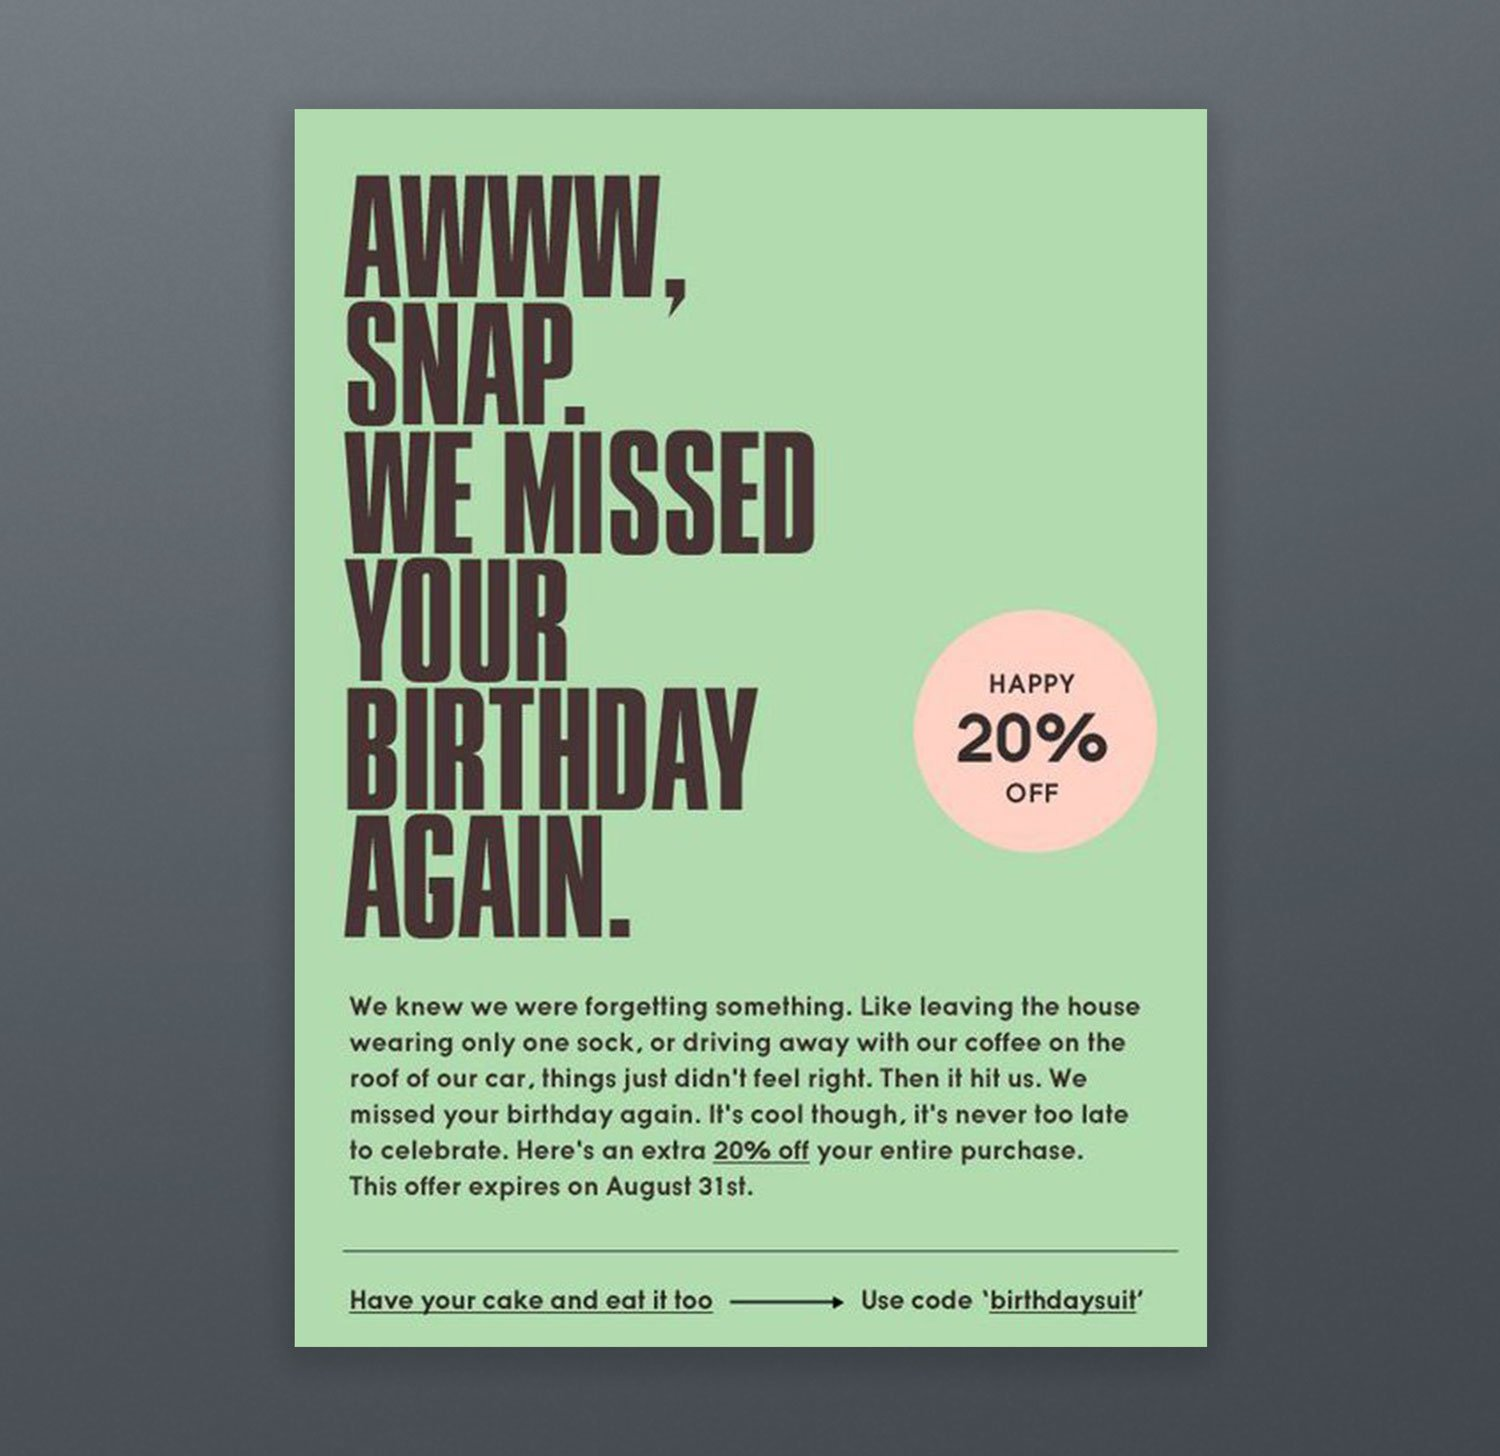 Need Supply Email Campaign Newsletter Birthday